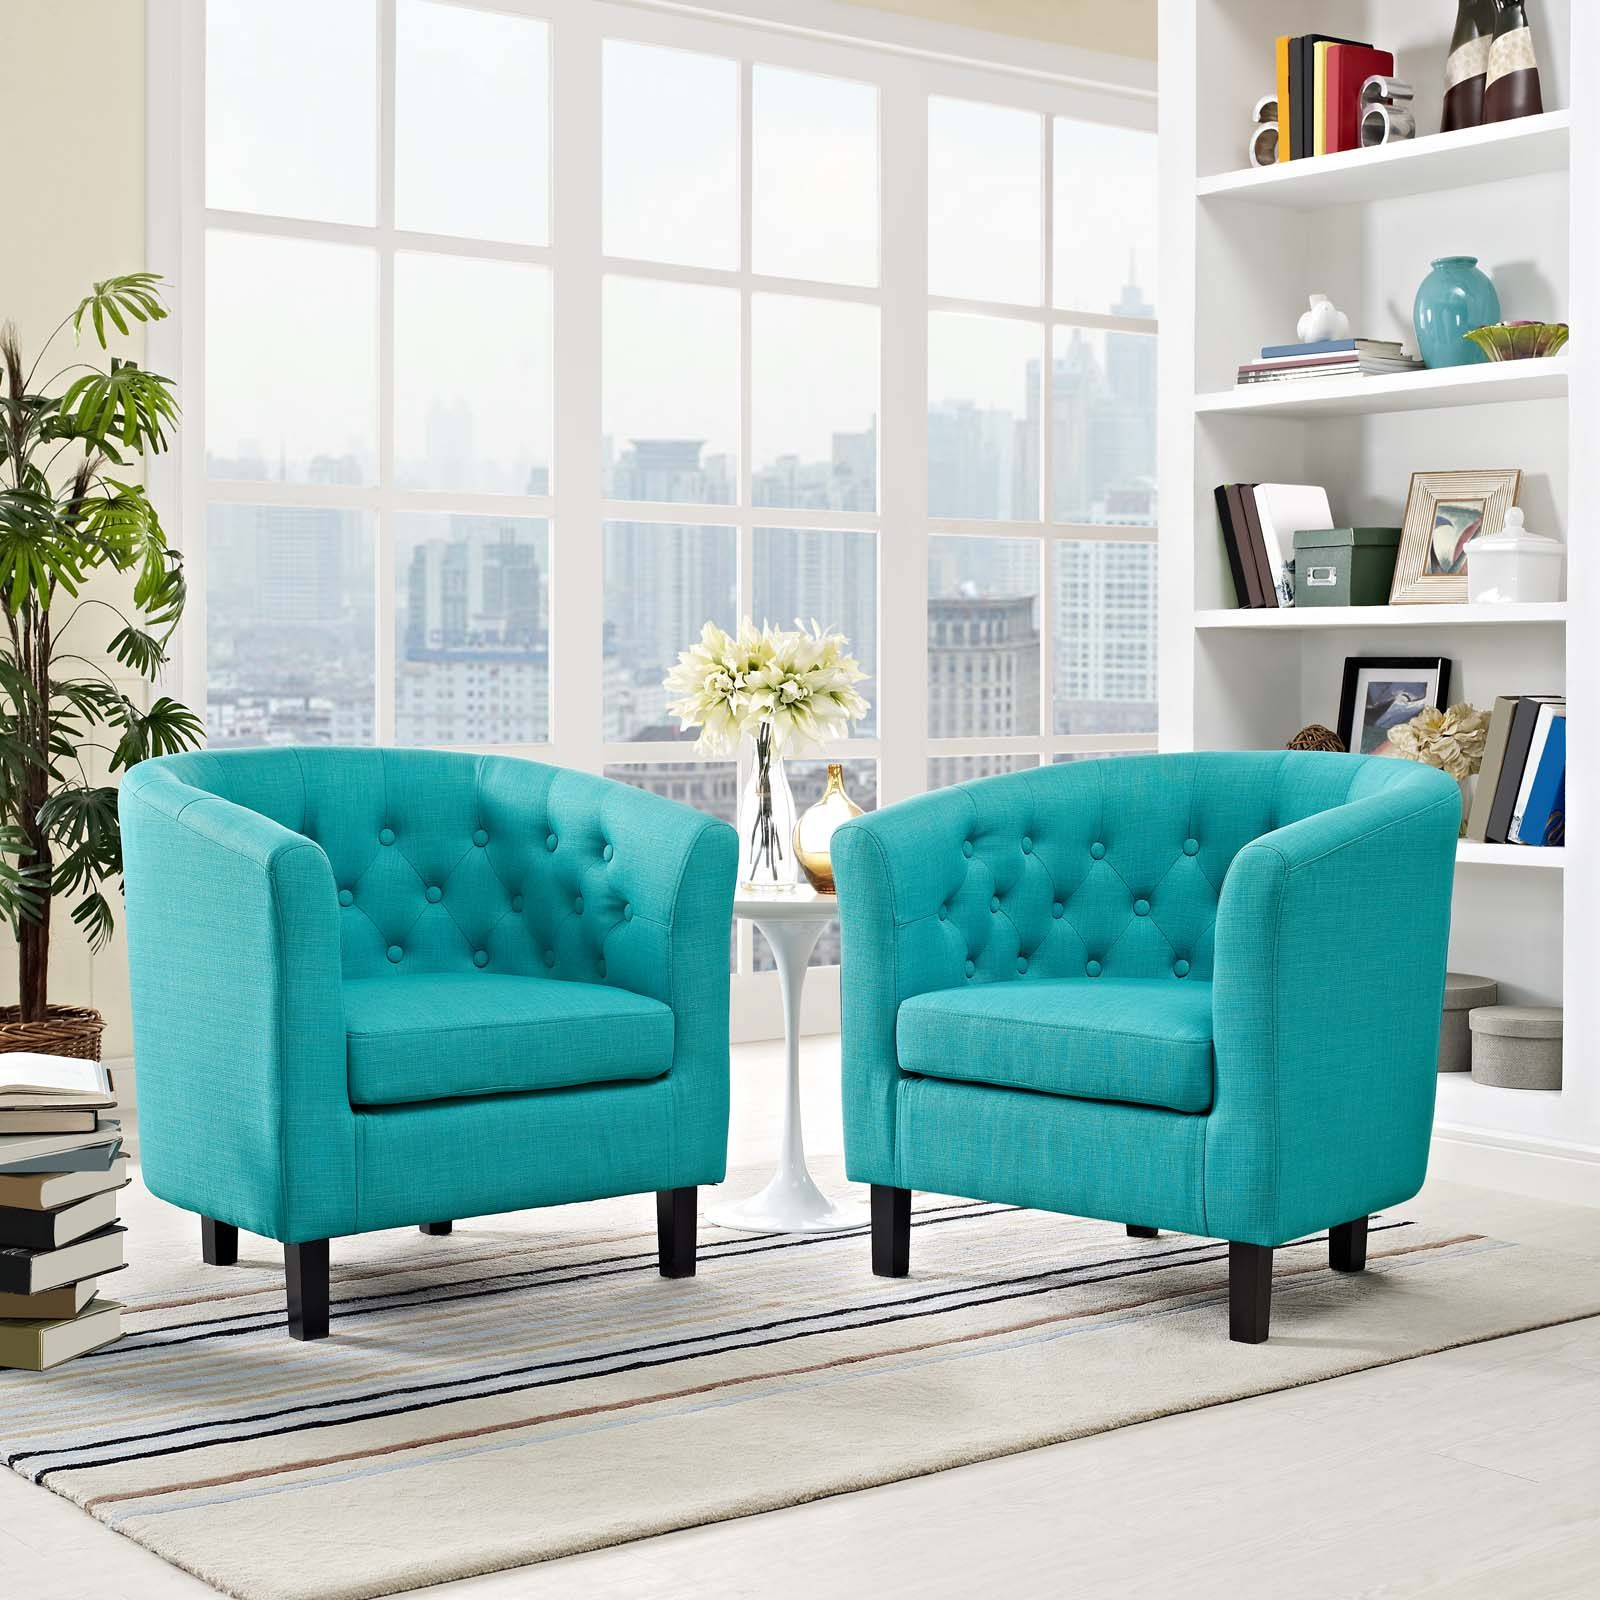 Modway Prospect 2 Piece Upholstered Fabric Armchair Set With Regard To Hutchinsen Polyester Blend Armchairs (View 9 of 15)